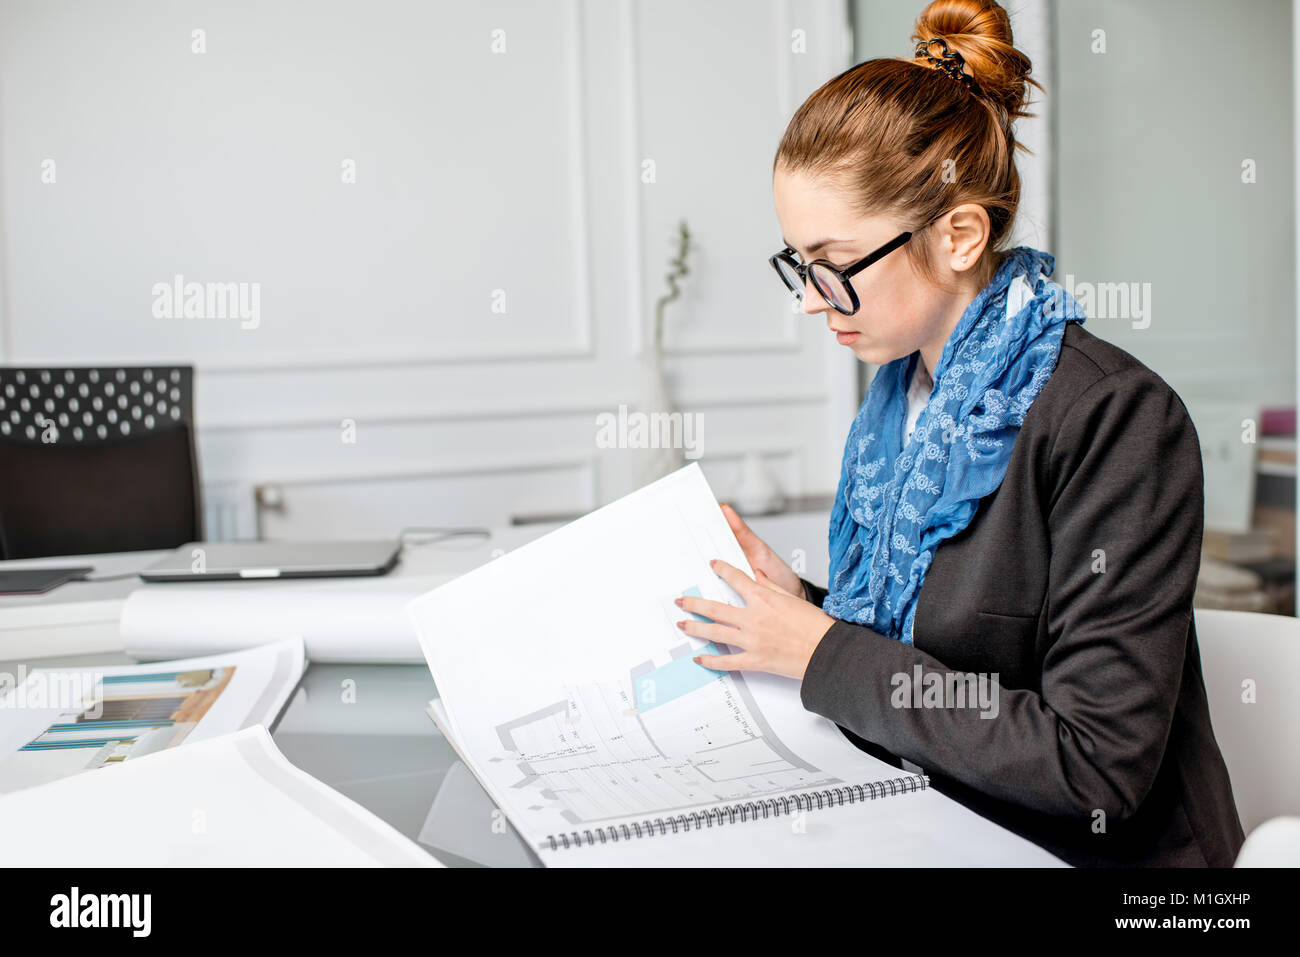 Architect working in the office - Stock Image